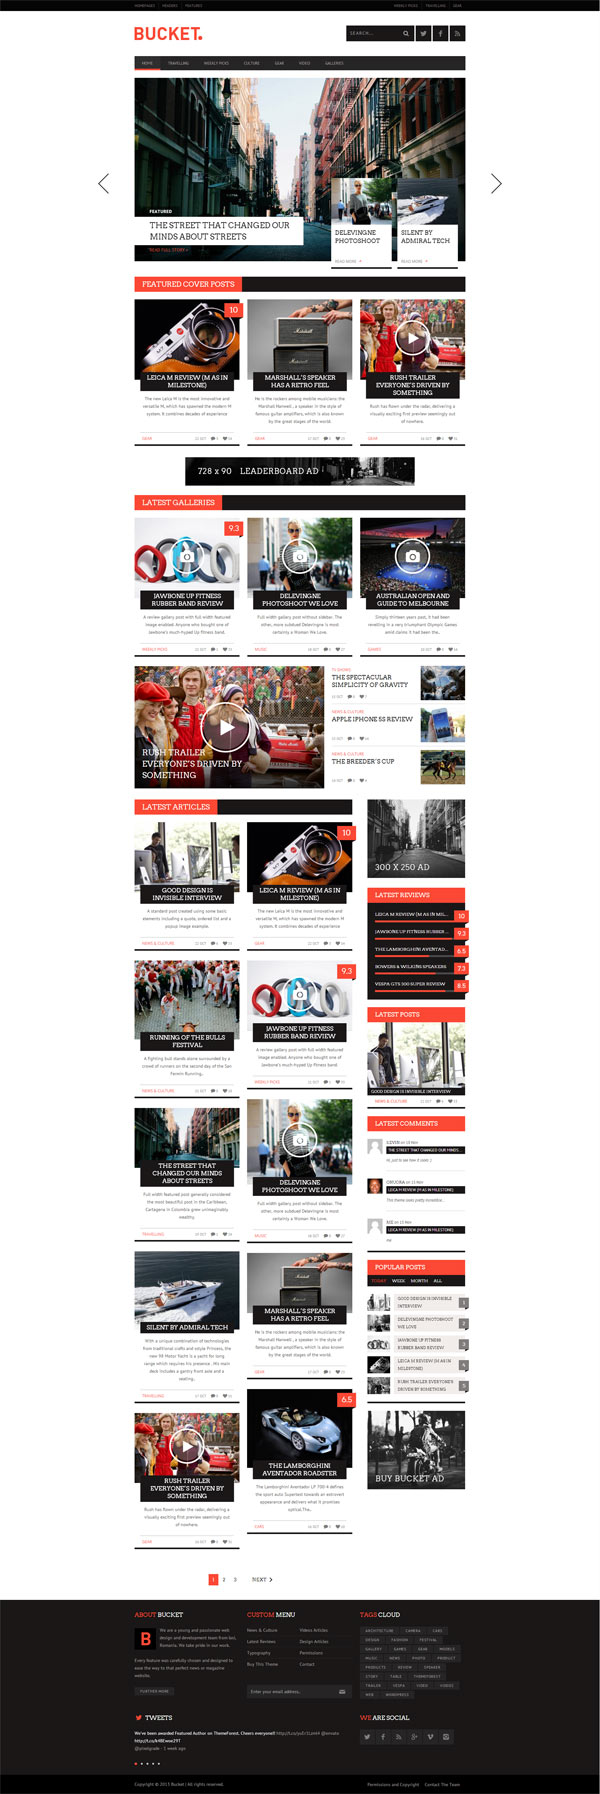 Bucket Magazine Style Wordpress Blog Theme